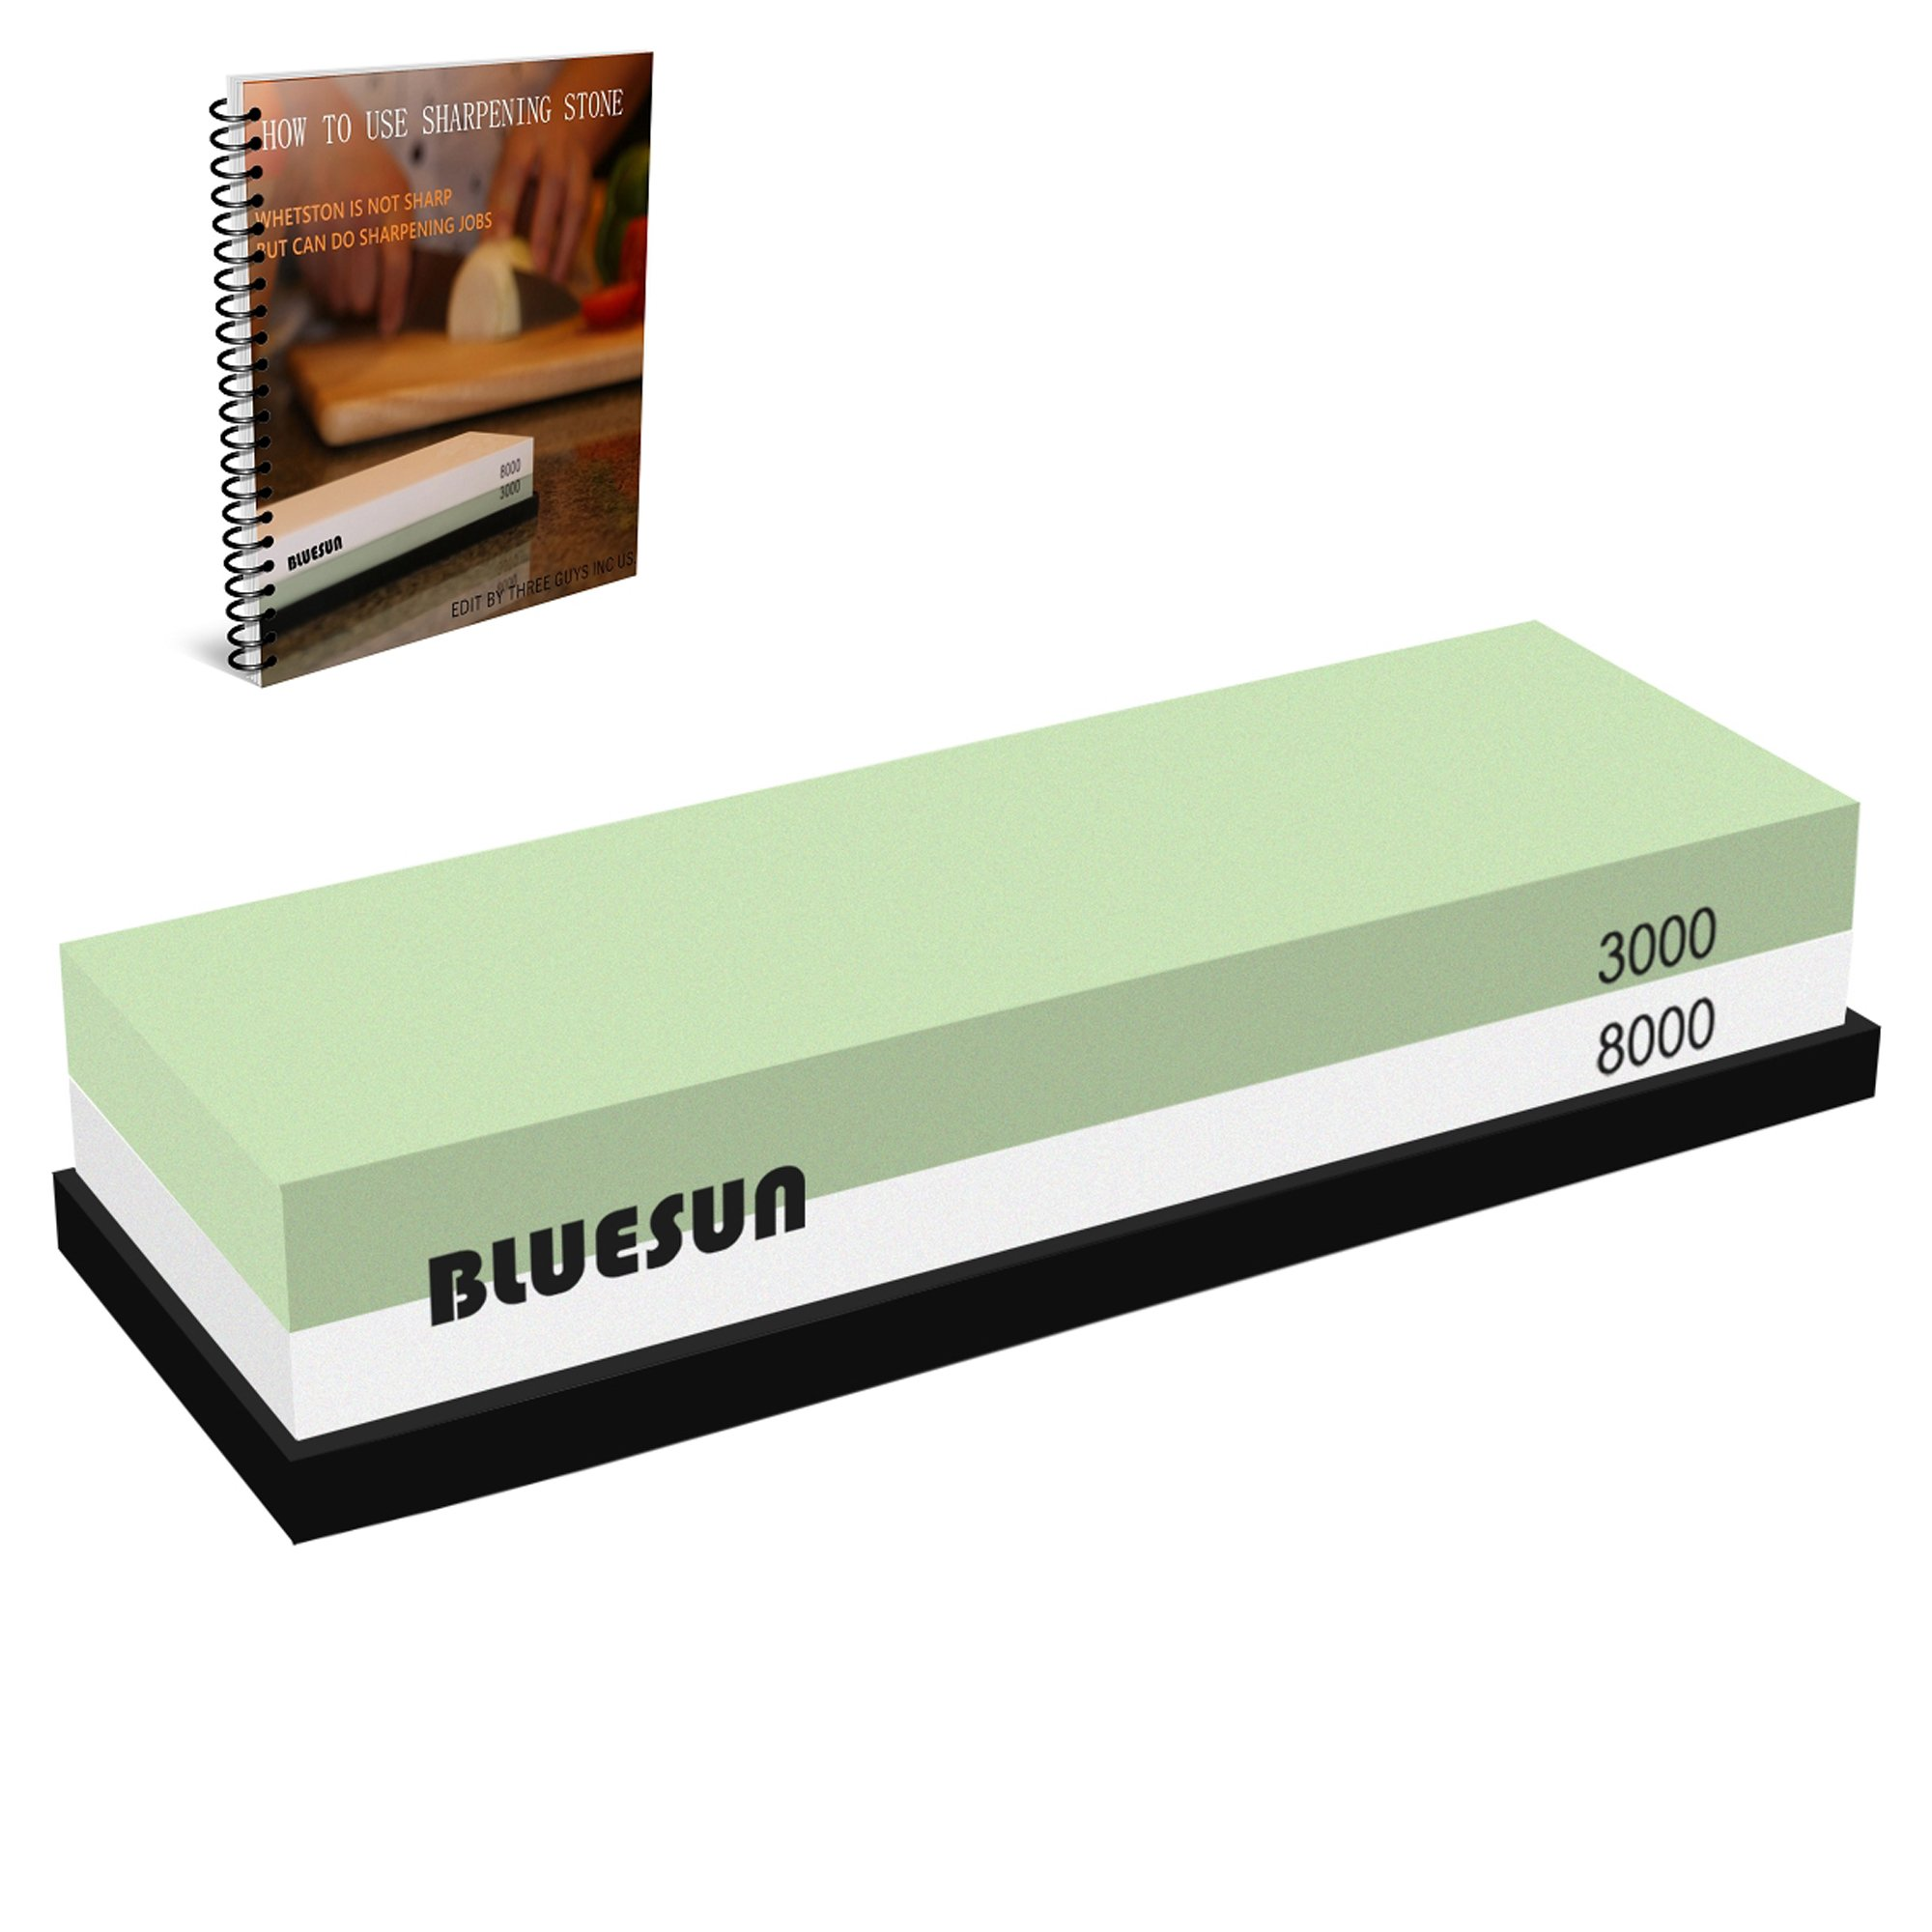 BLUESUN Knife Sharpening Sharpener Stone Whetstone Waterstone 3000 8000 Grit, Silicon Non-slip Base and Ebook Included for Kitchen knives, Tactical knives, Scissors, Razors, Swords, and More